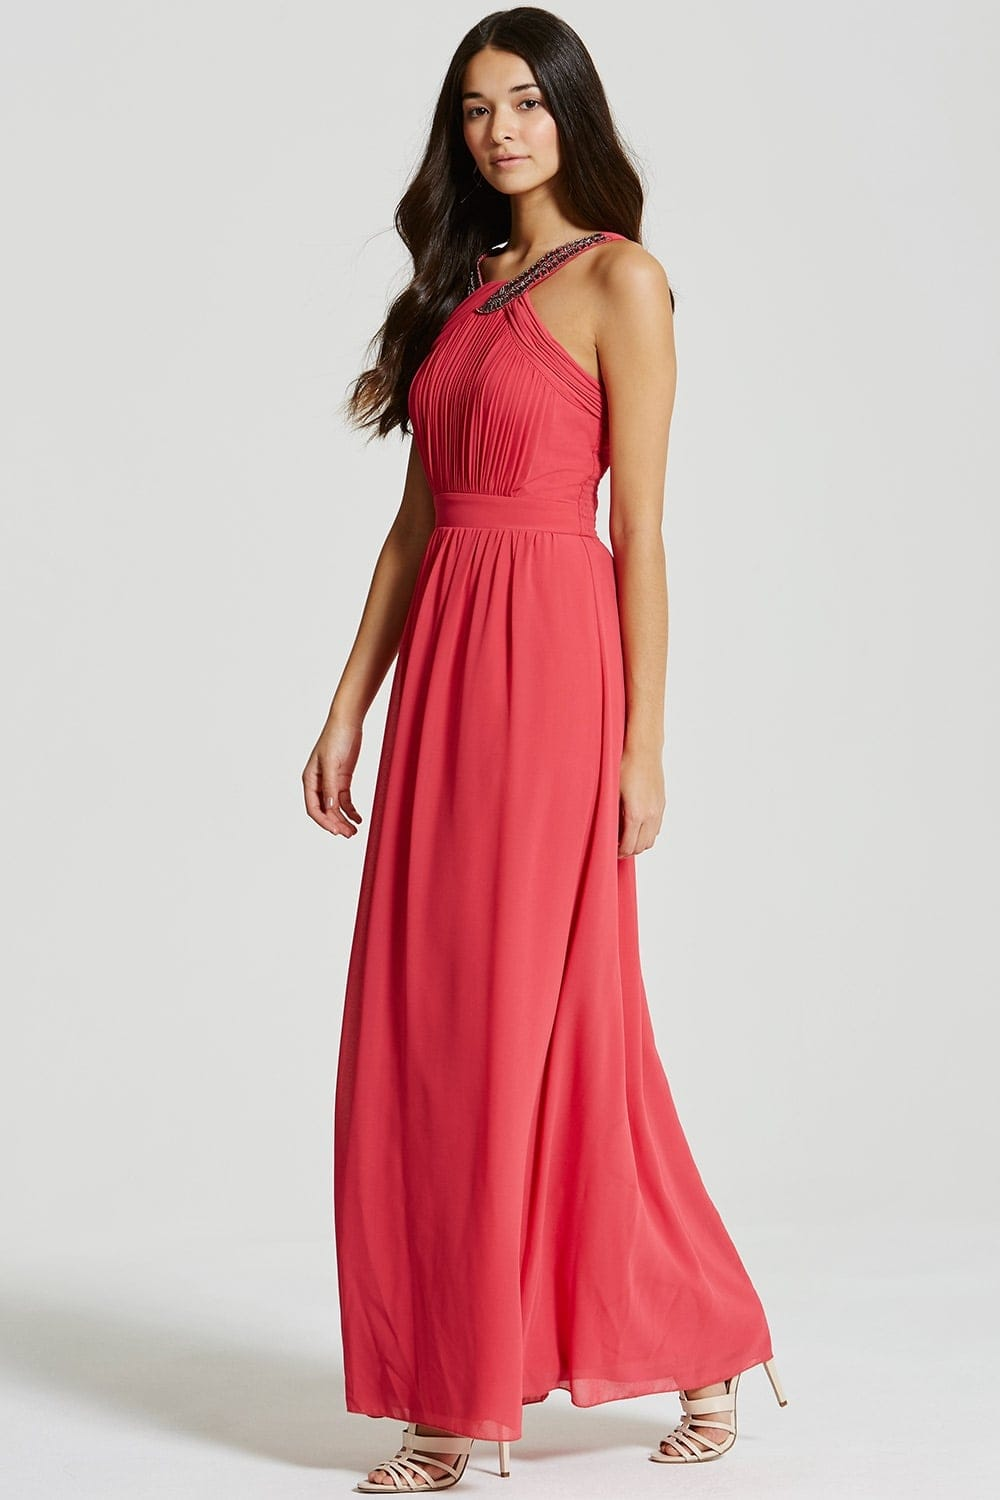 Little Mistress Pink Embellished Chiffon Maxi Dress - Little ...